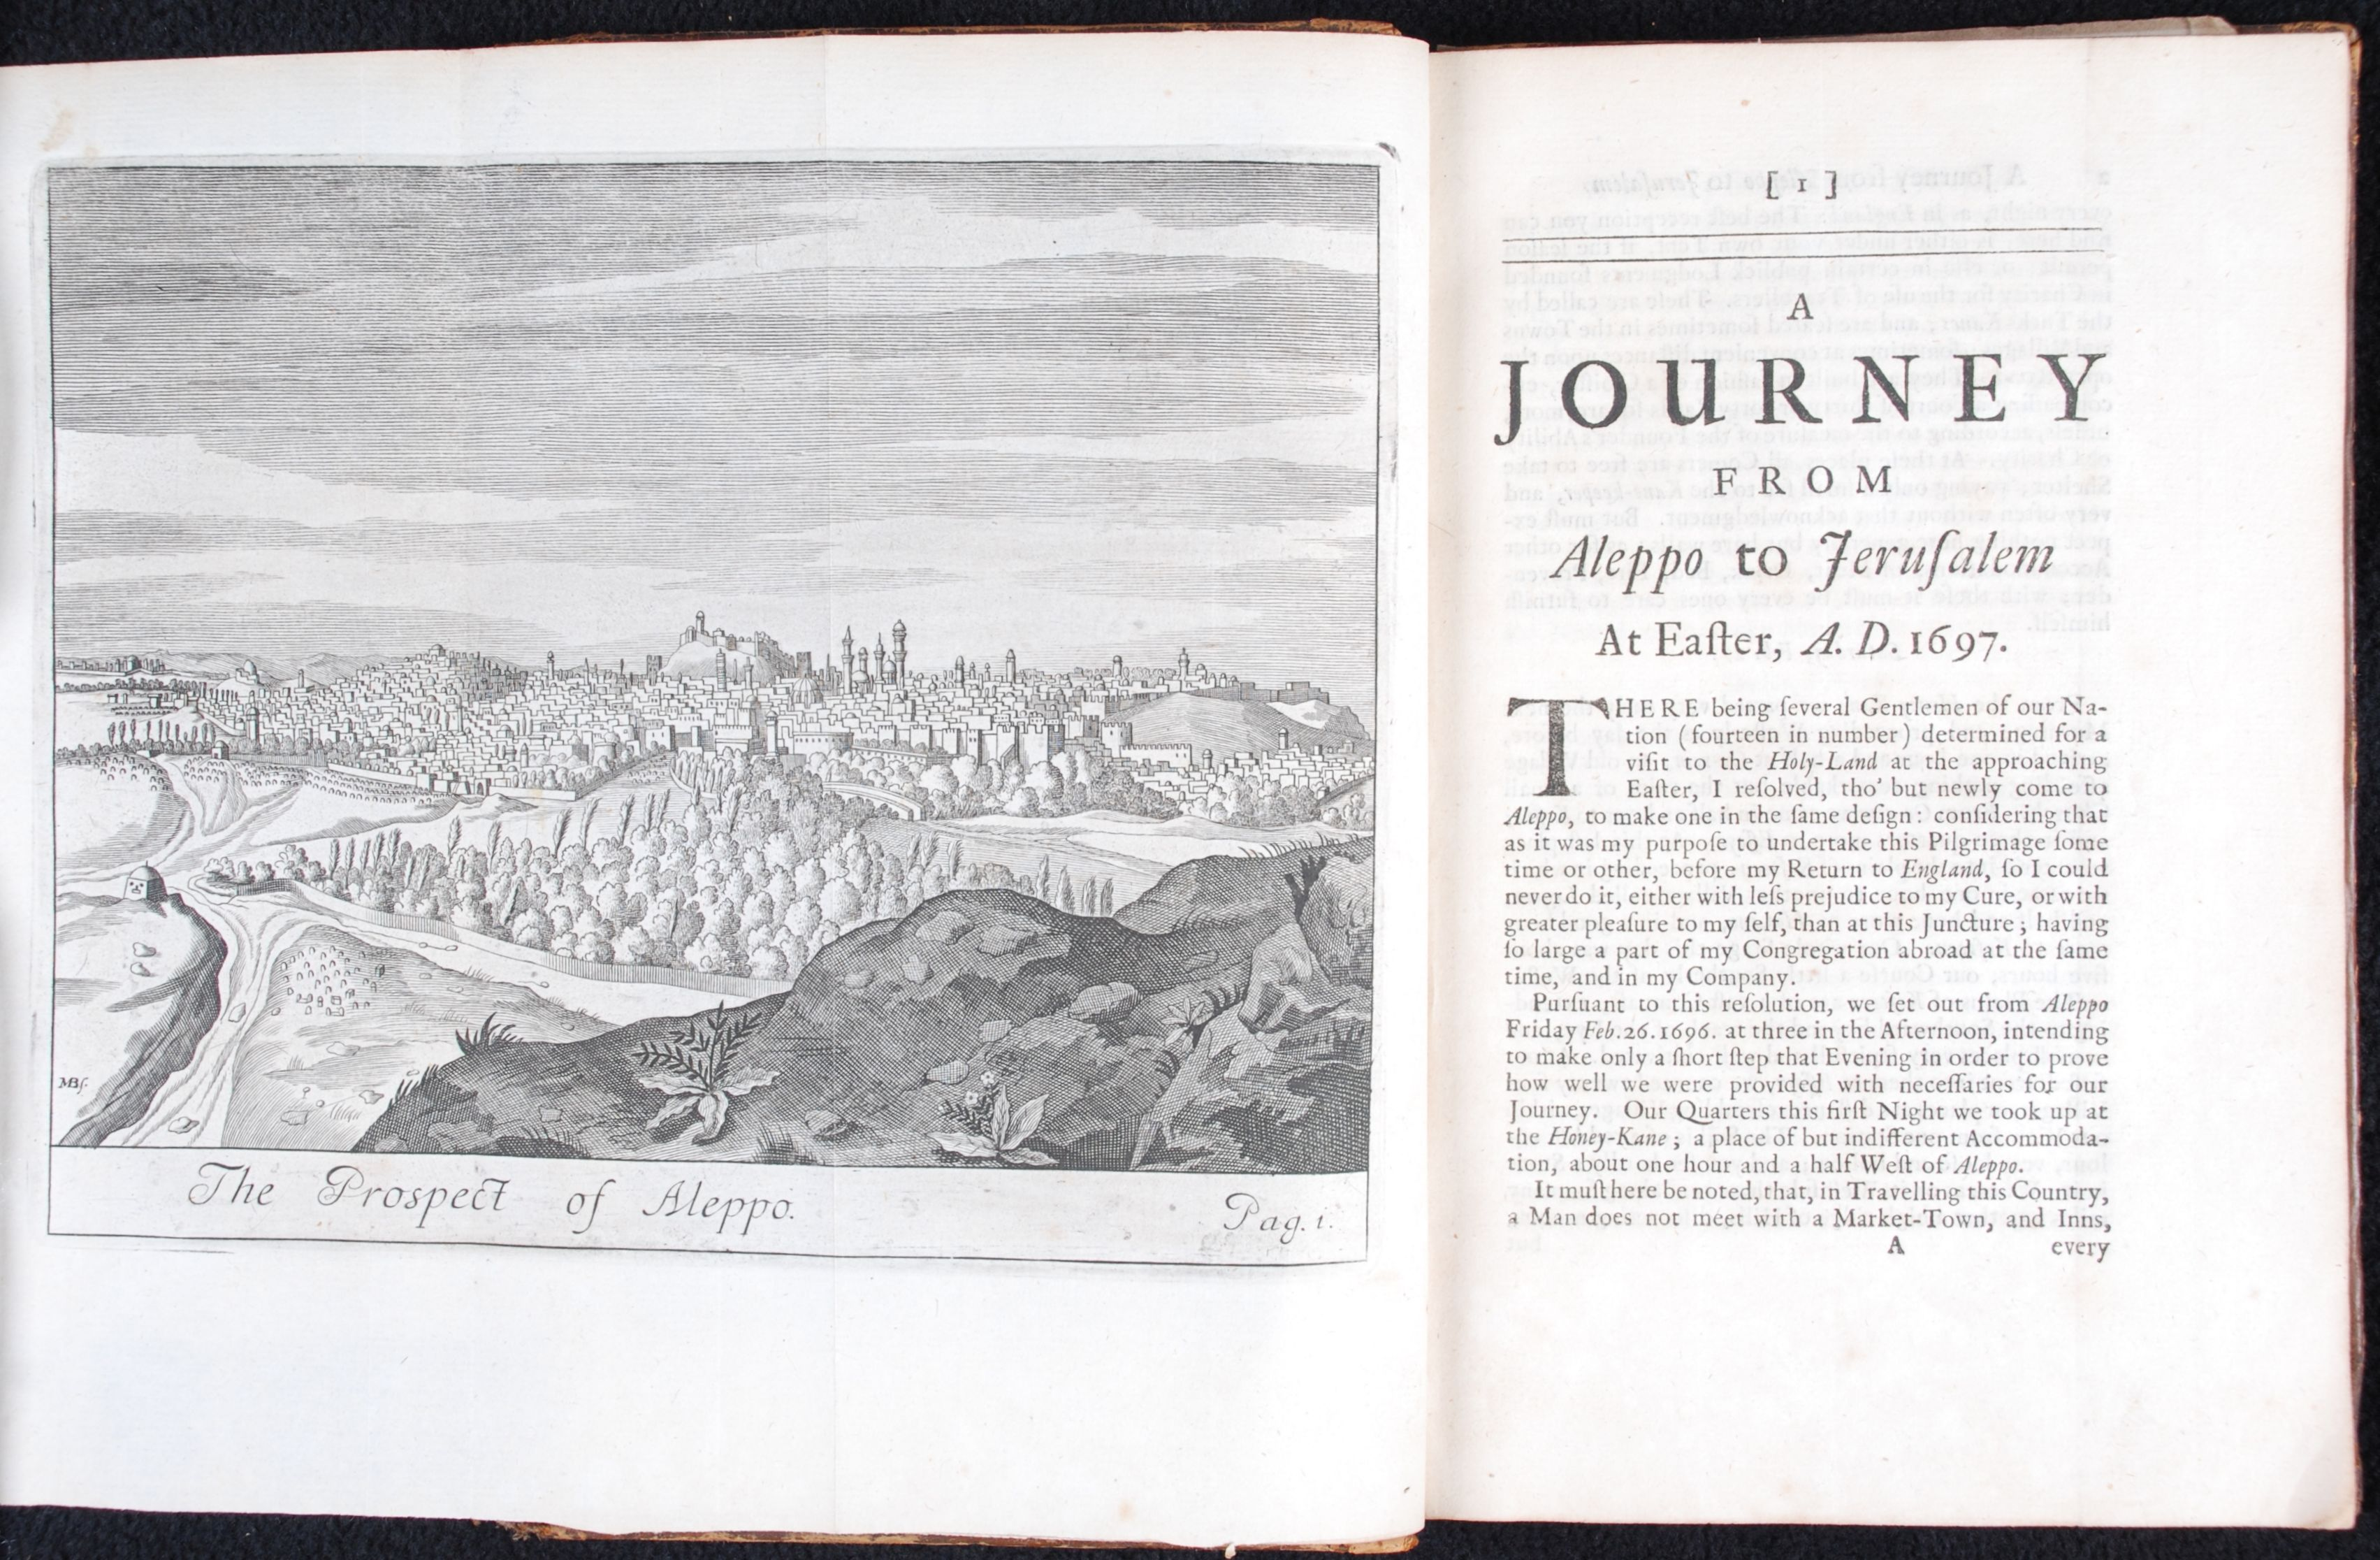 Henry Maundrell. A journey from Aleppo to Jerusalem at Easter, A.D.1697. 5th edition. Oxford: Printed at the Theater, 1732.